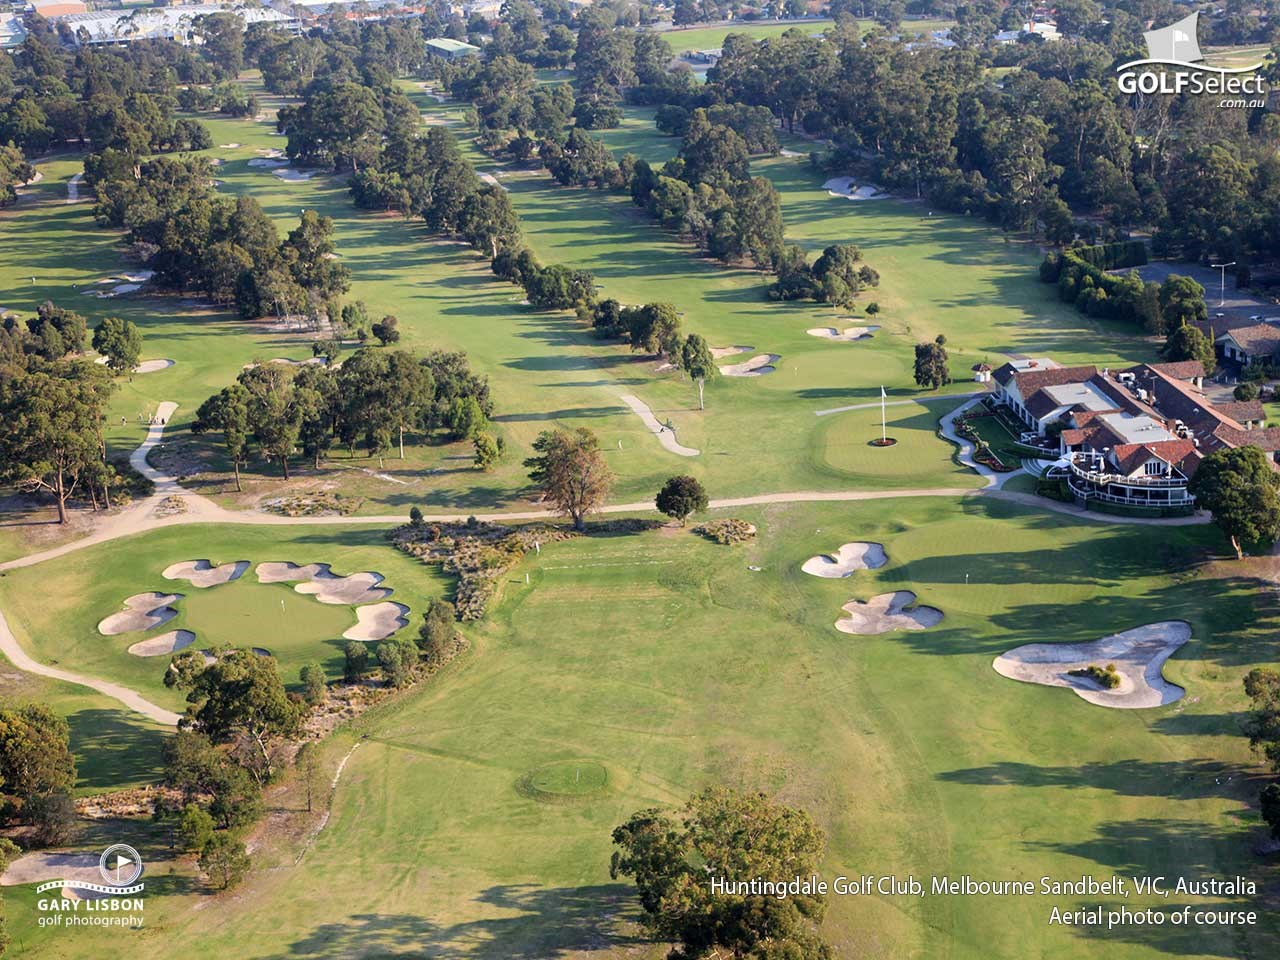 Huntingdale Golf Club Arial View of Huntingdale